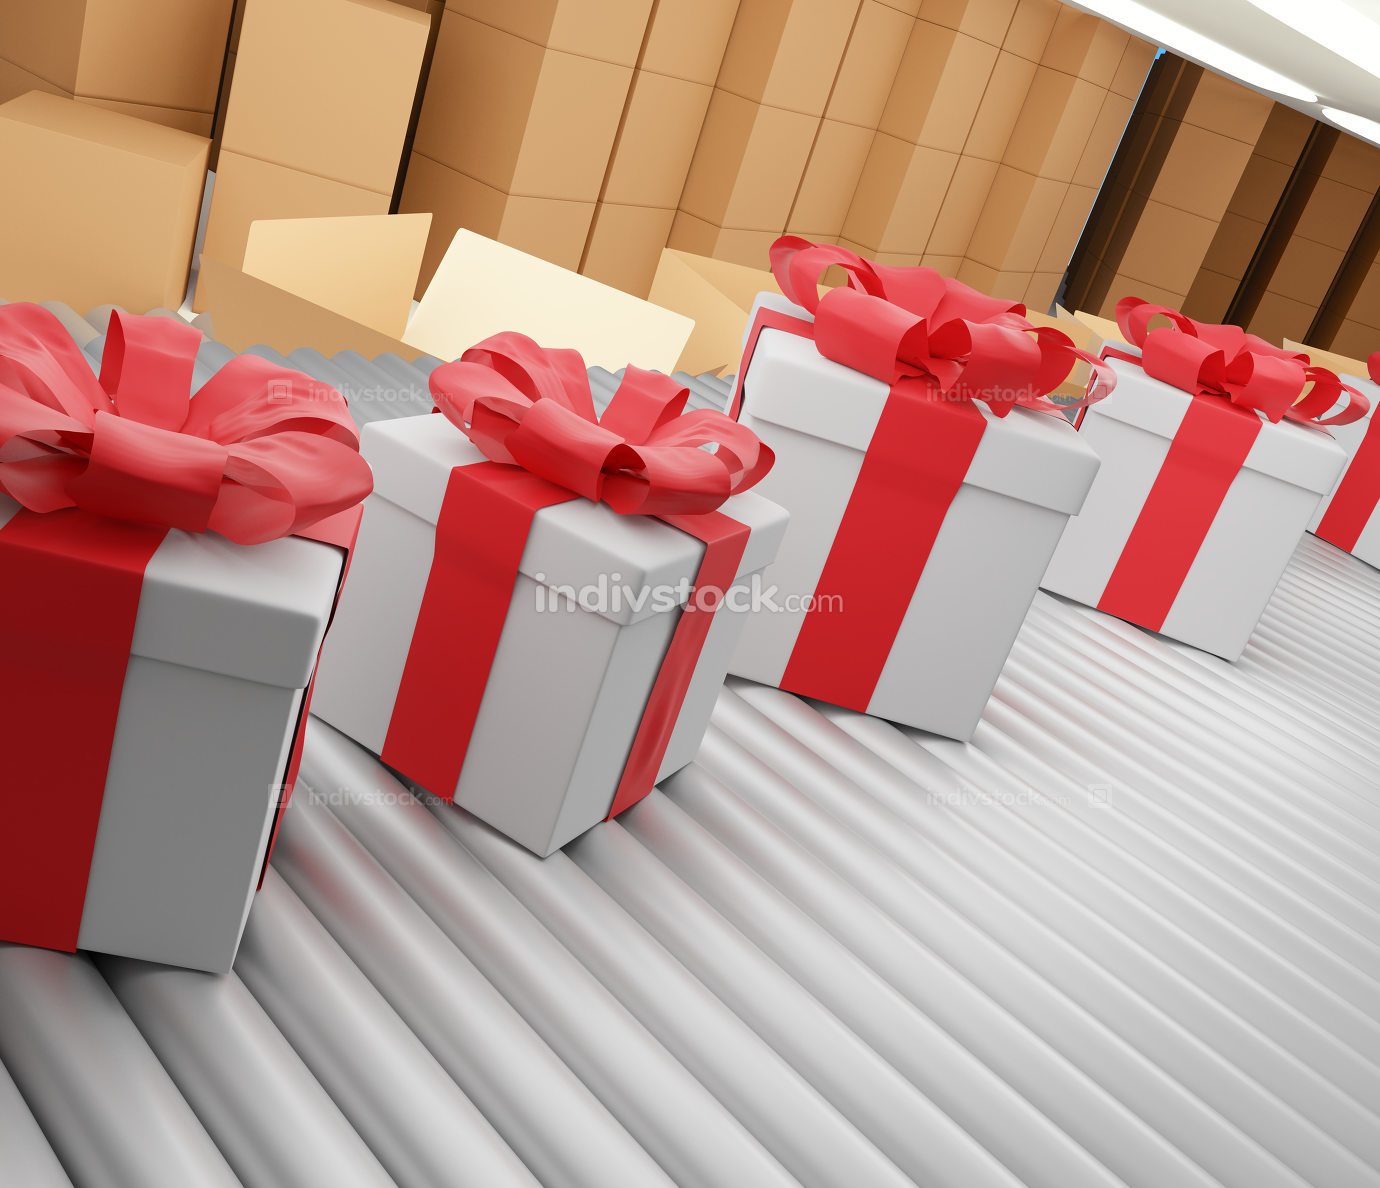 christmas presents row on conveyor belt 3d-illustration